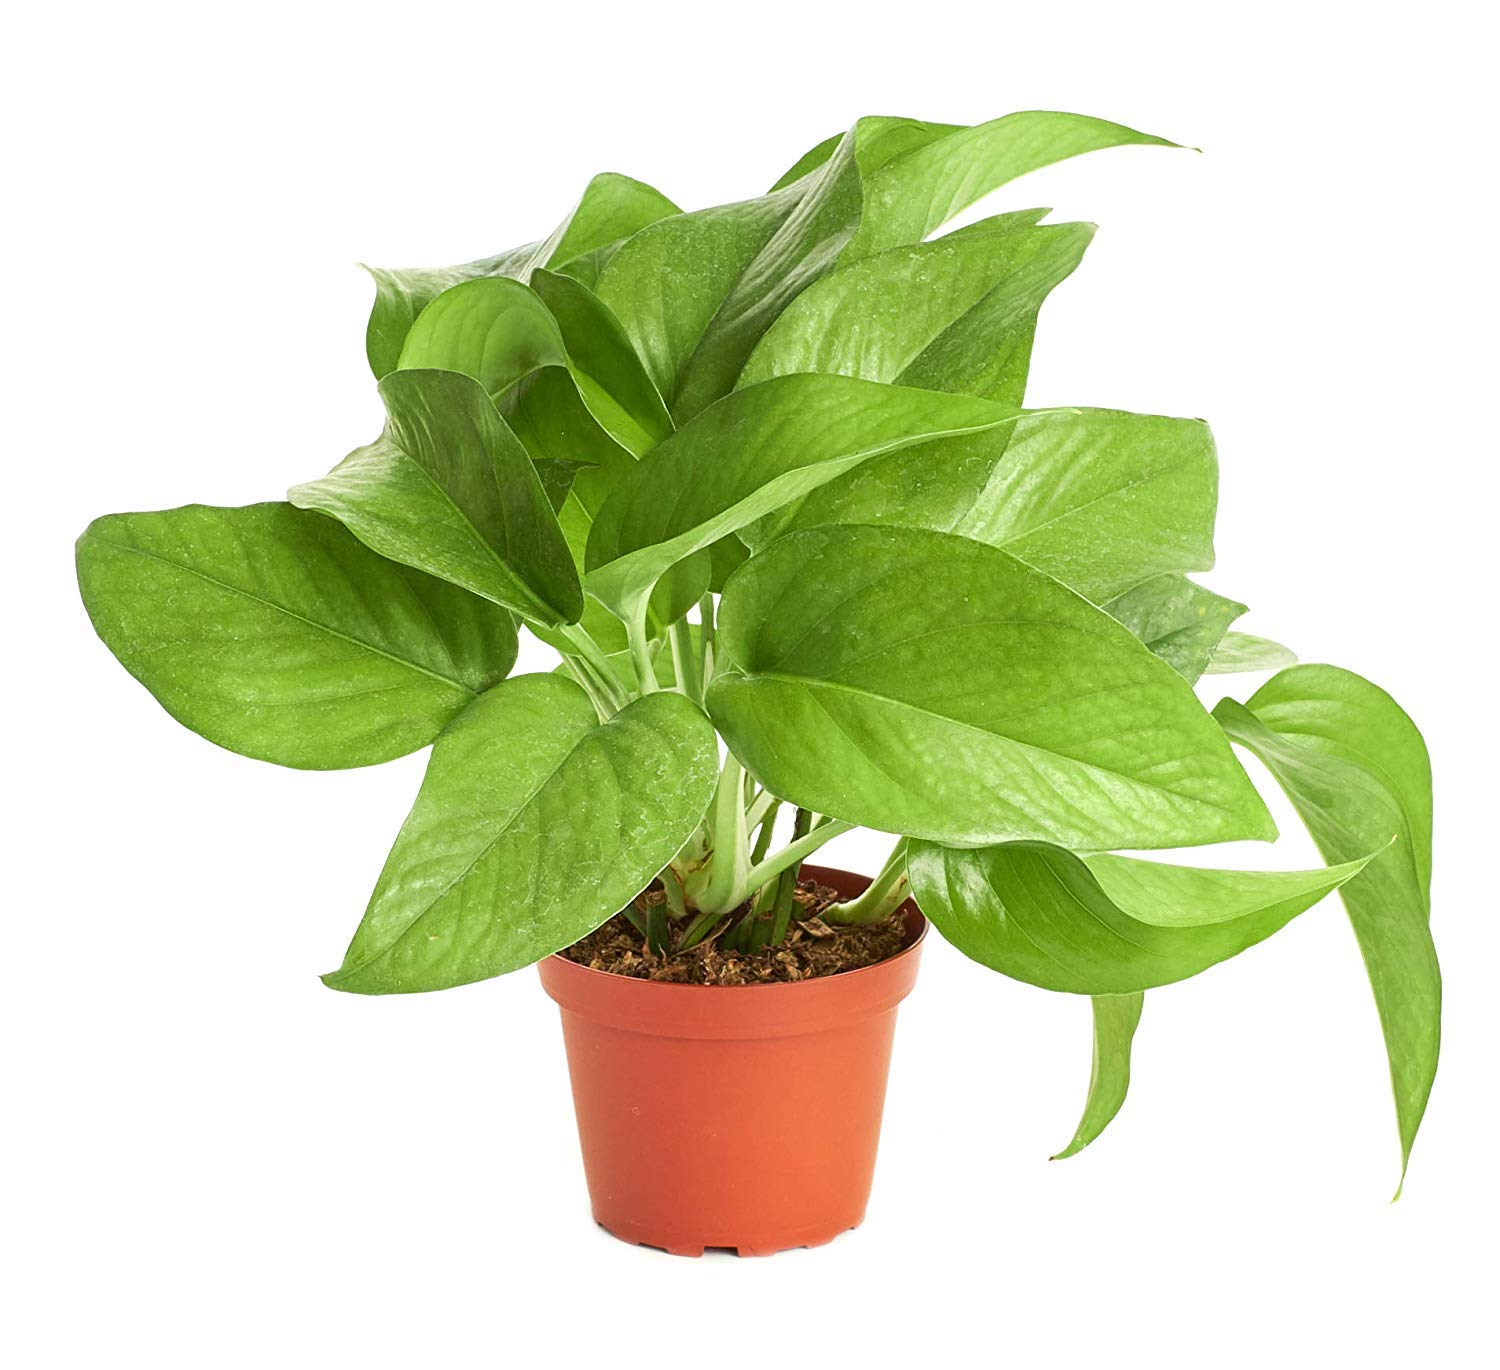 Shop Succulents     Pothos 'Devil's Ivy' Naturally Air Purifying, Easy Care, Live Indoor House Plant in 4'' Grow Pot